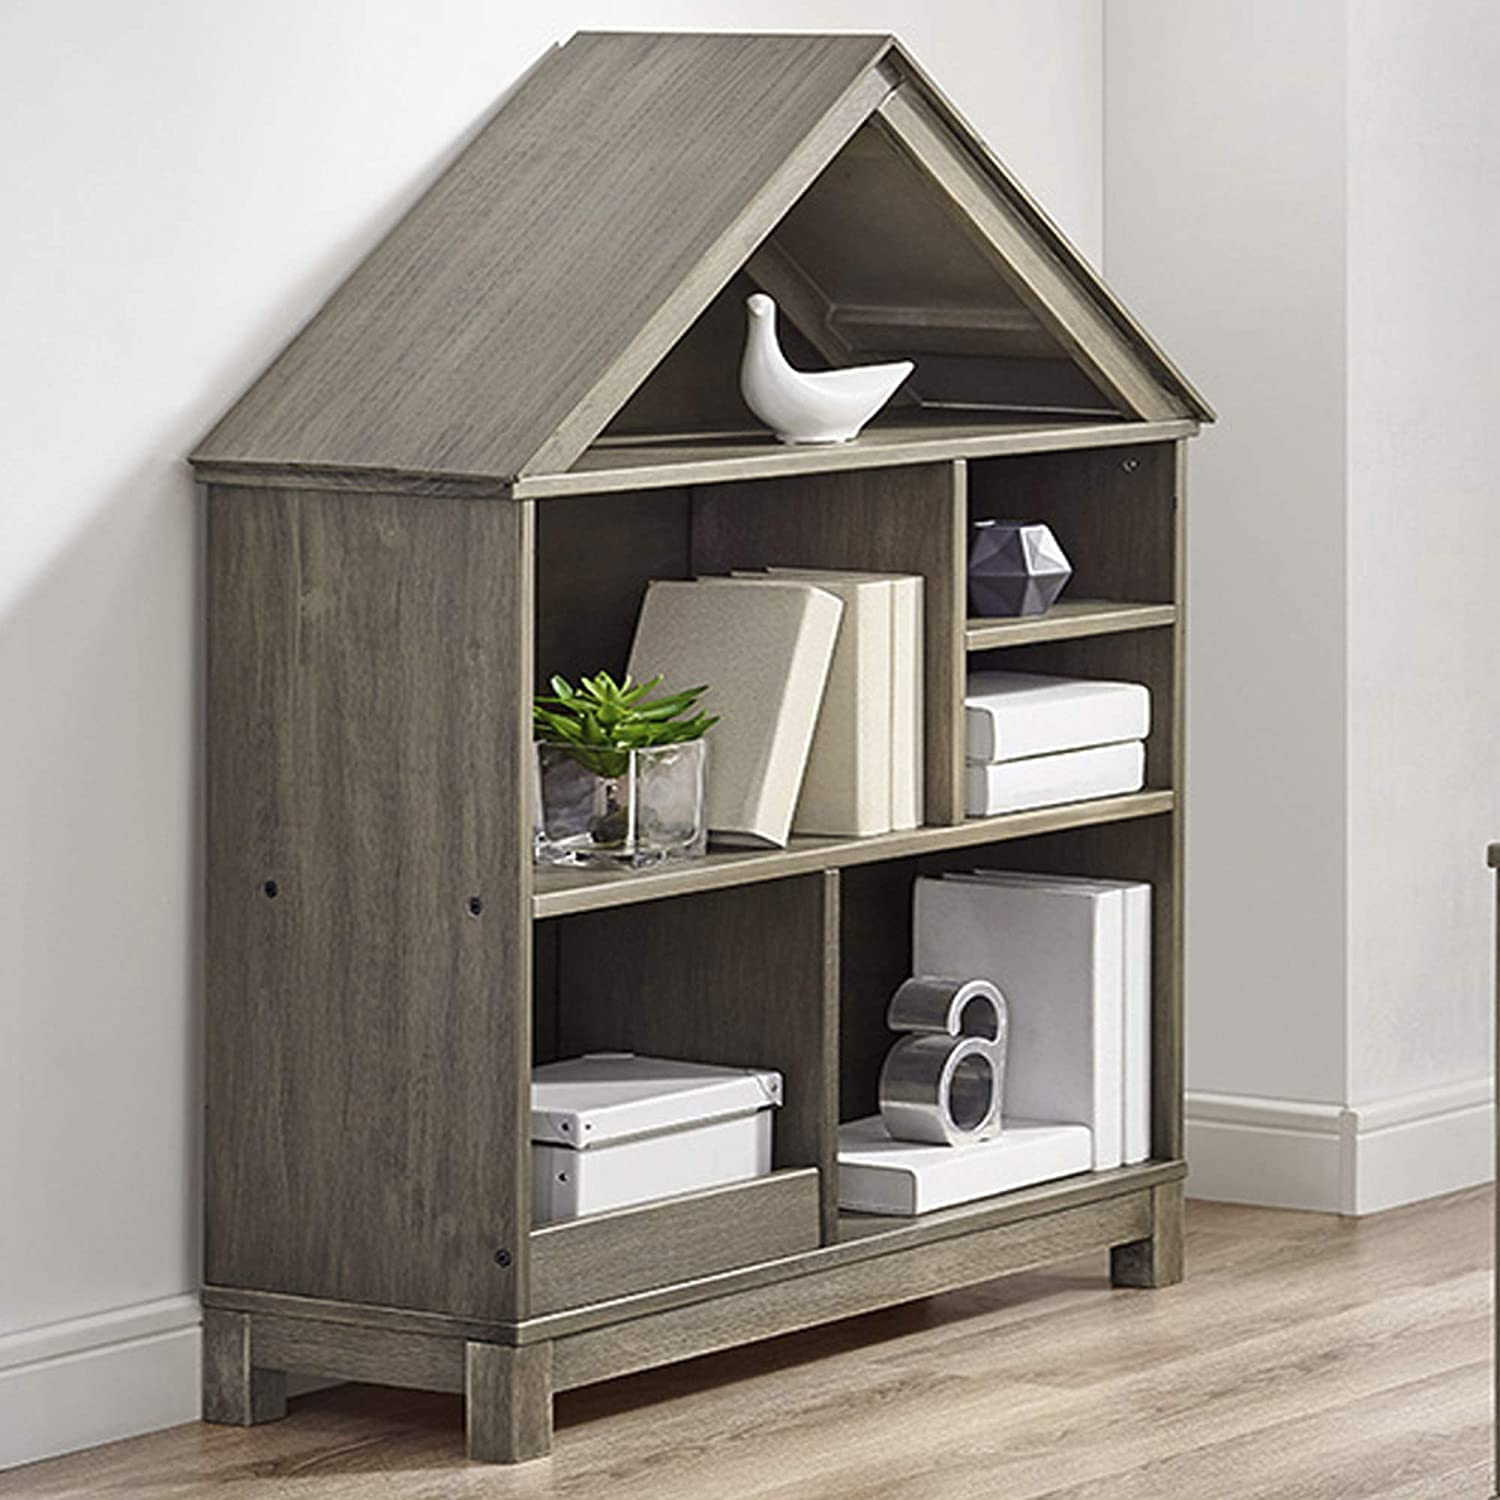 Classic Brands Sam & Jack Kids House Syle Solid Wood Bookcase, Weathered Grey